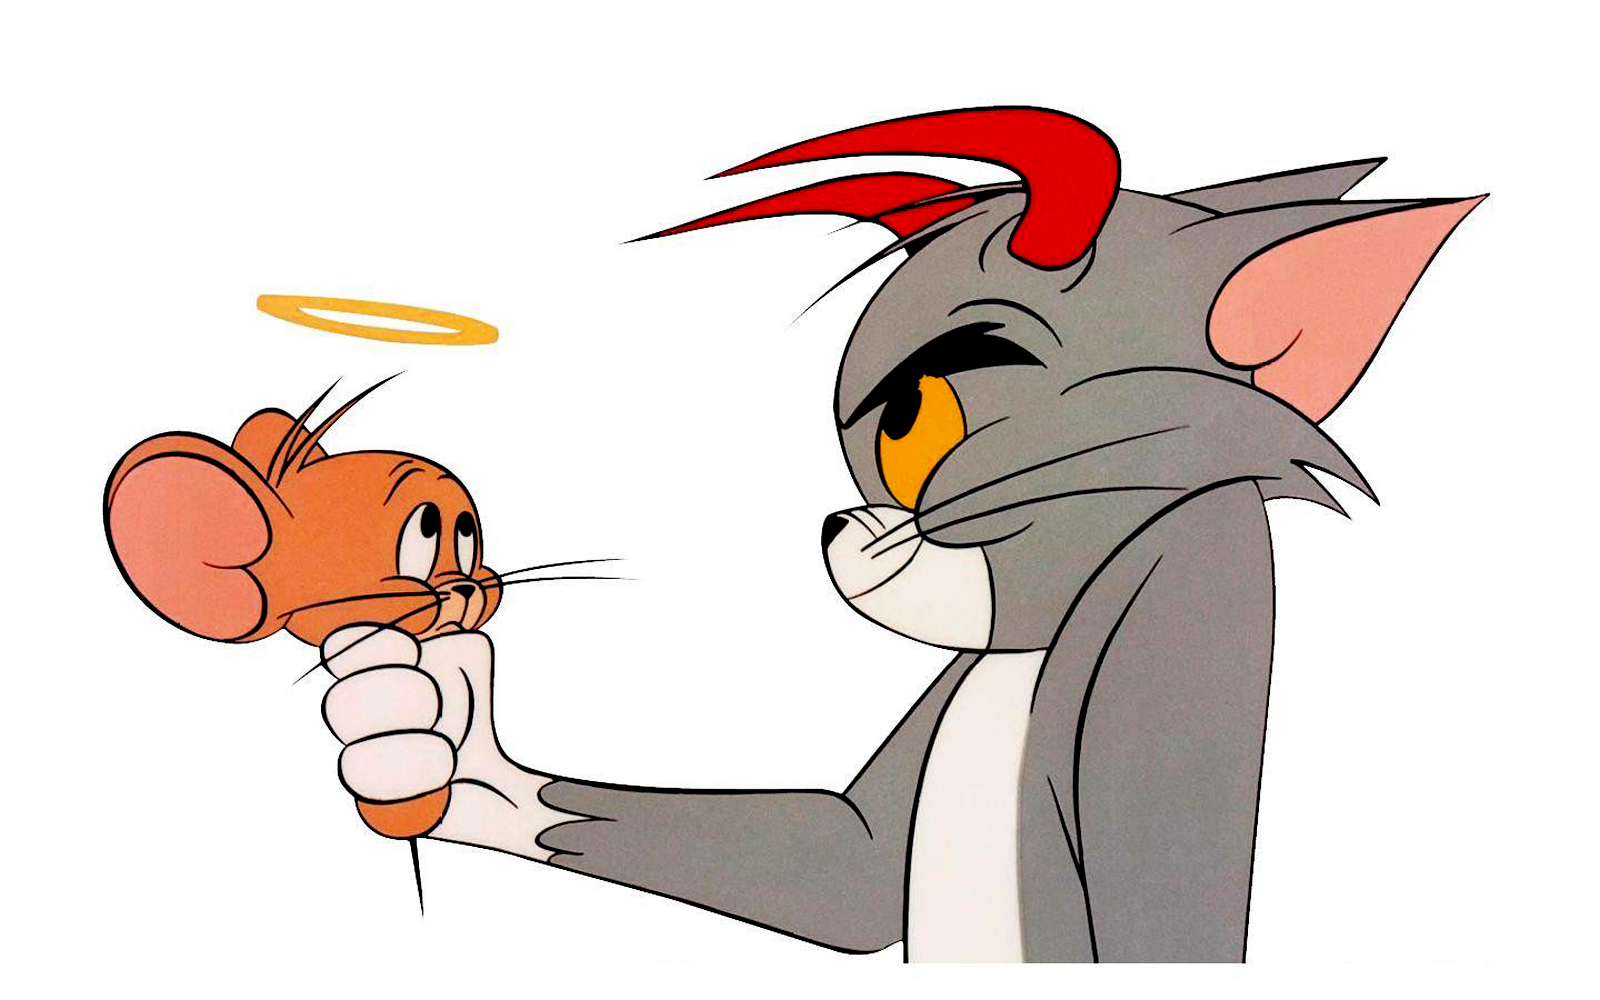 Akash Name Wallpaper In Hd Tom And Jerry Wallpapers In Hd Digital Hd Photos